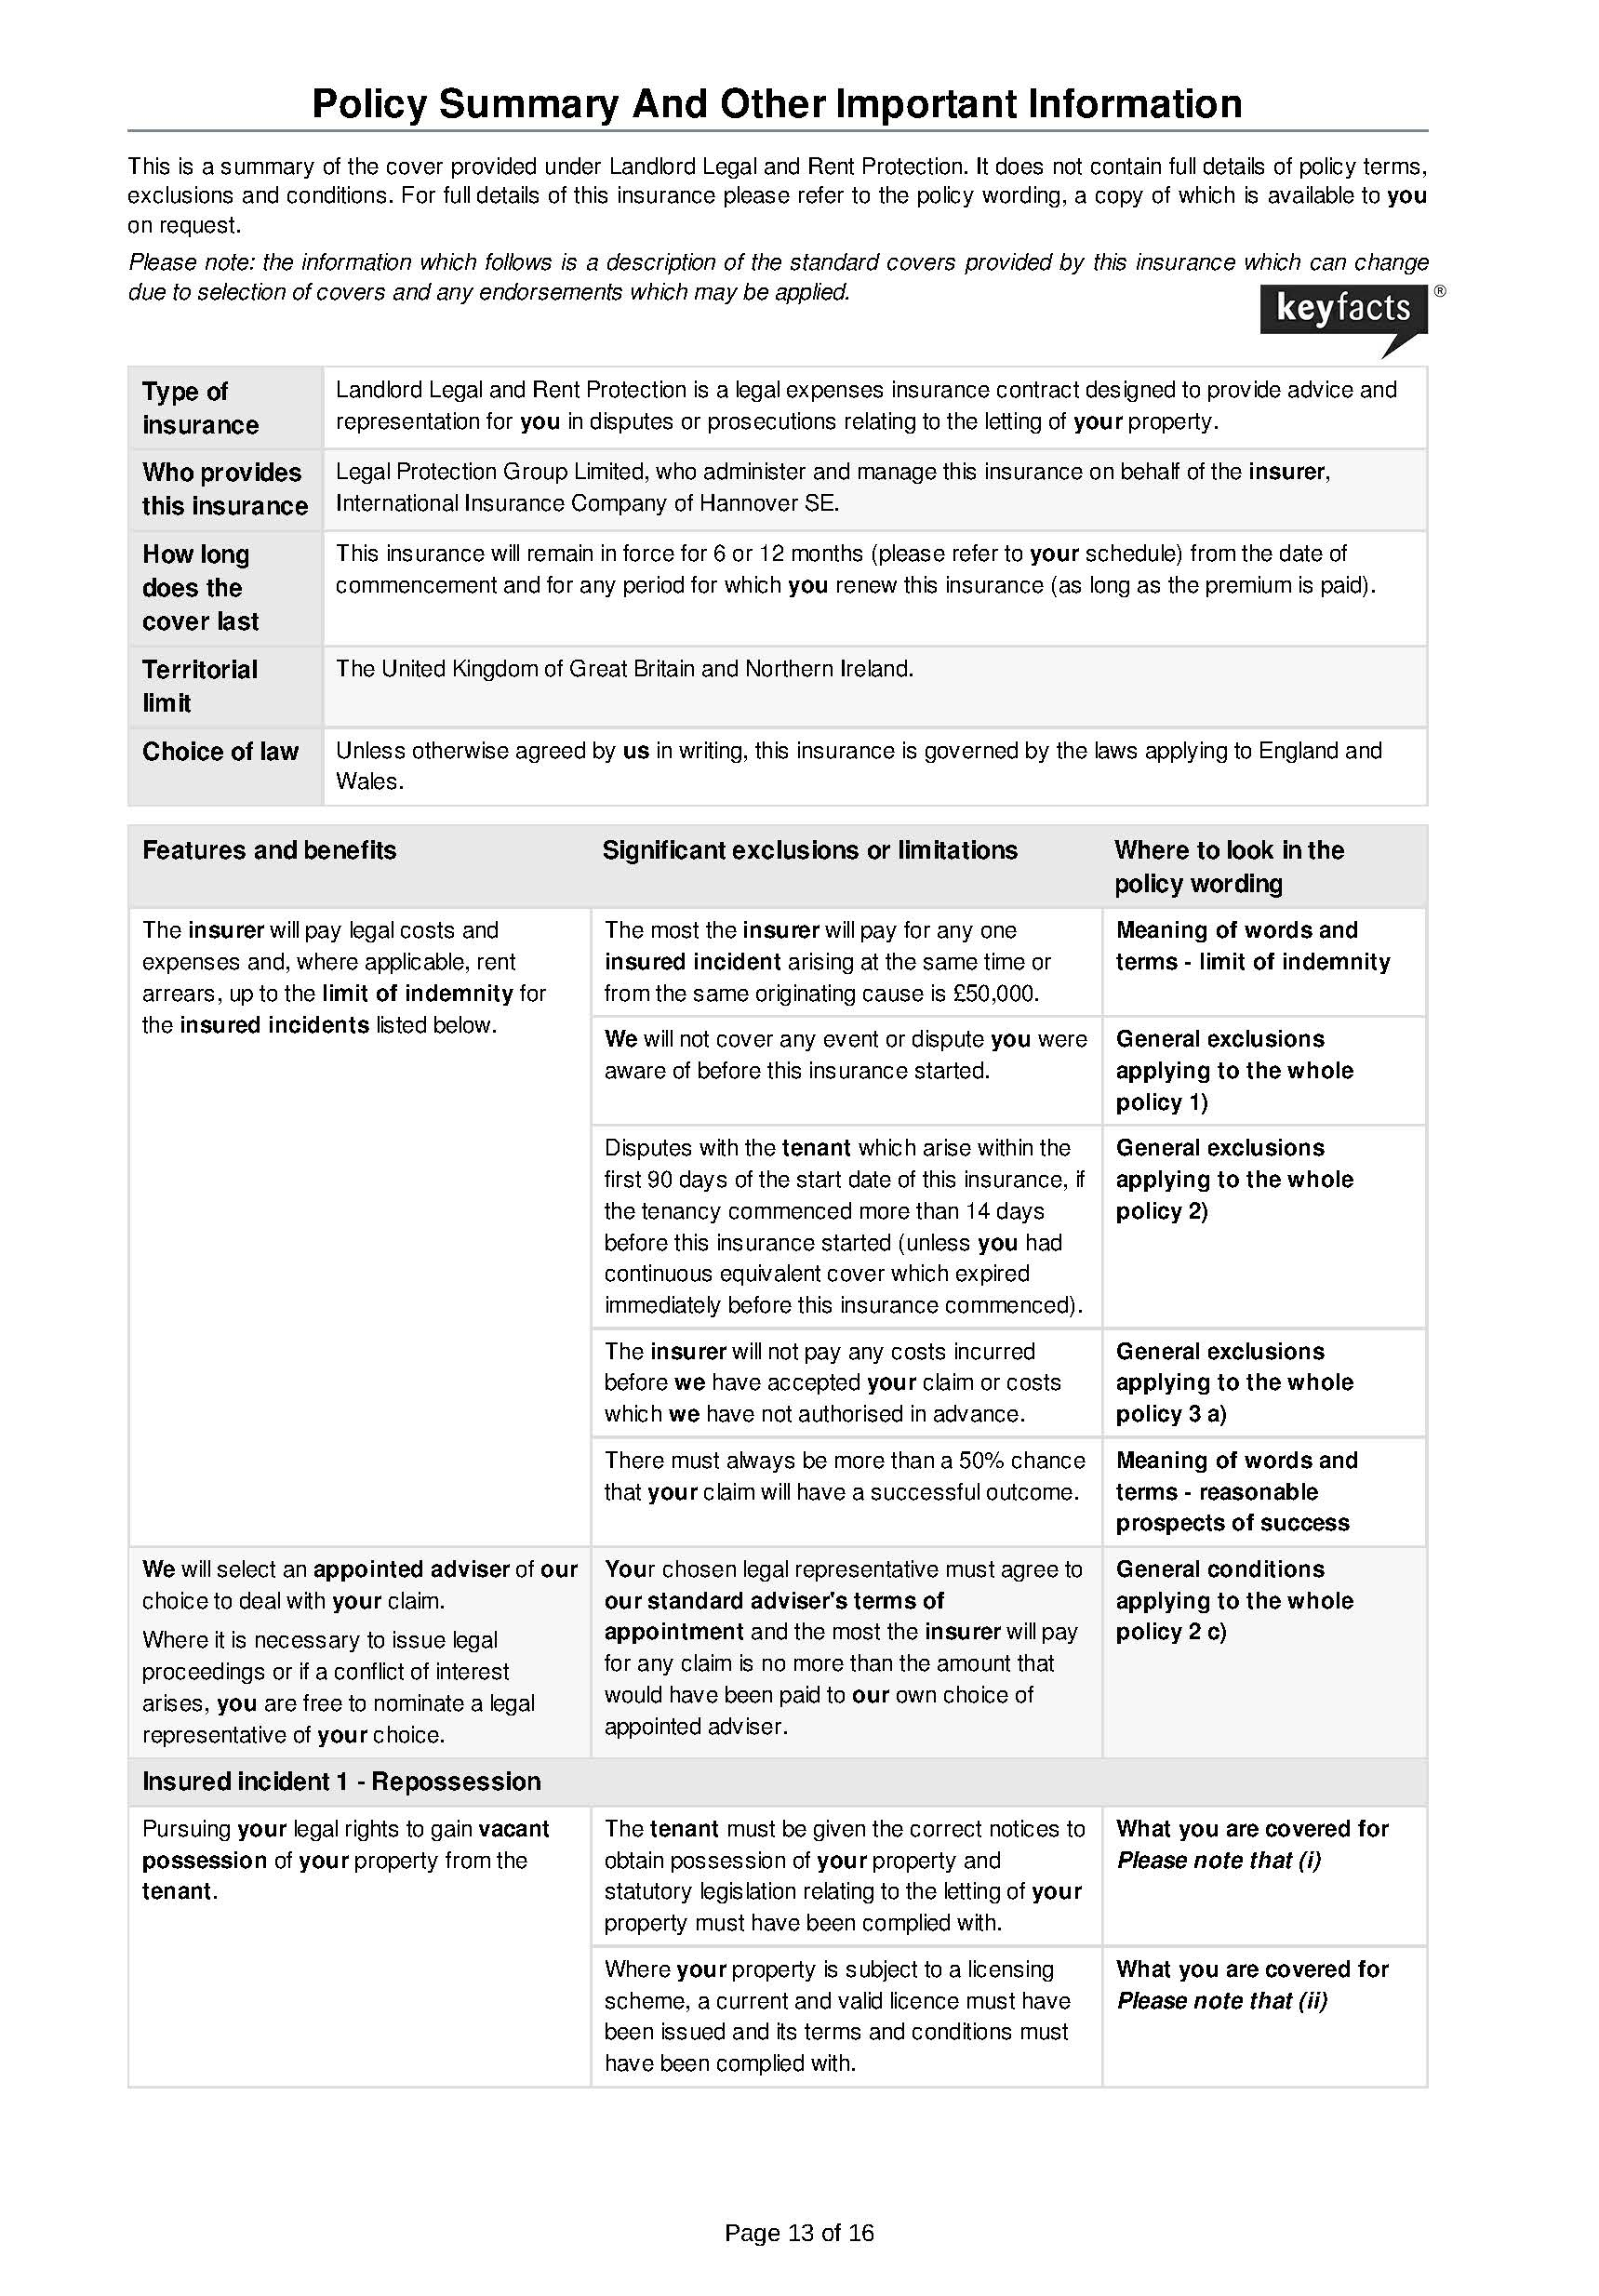 insurance_policy_02_page_13